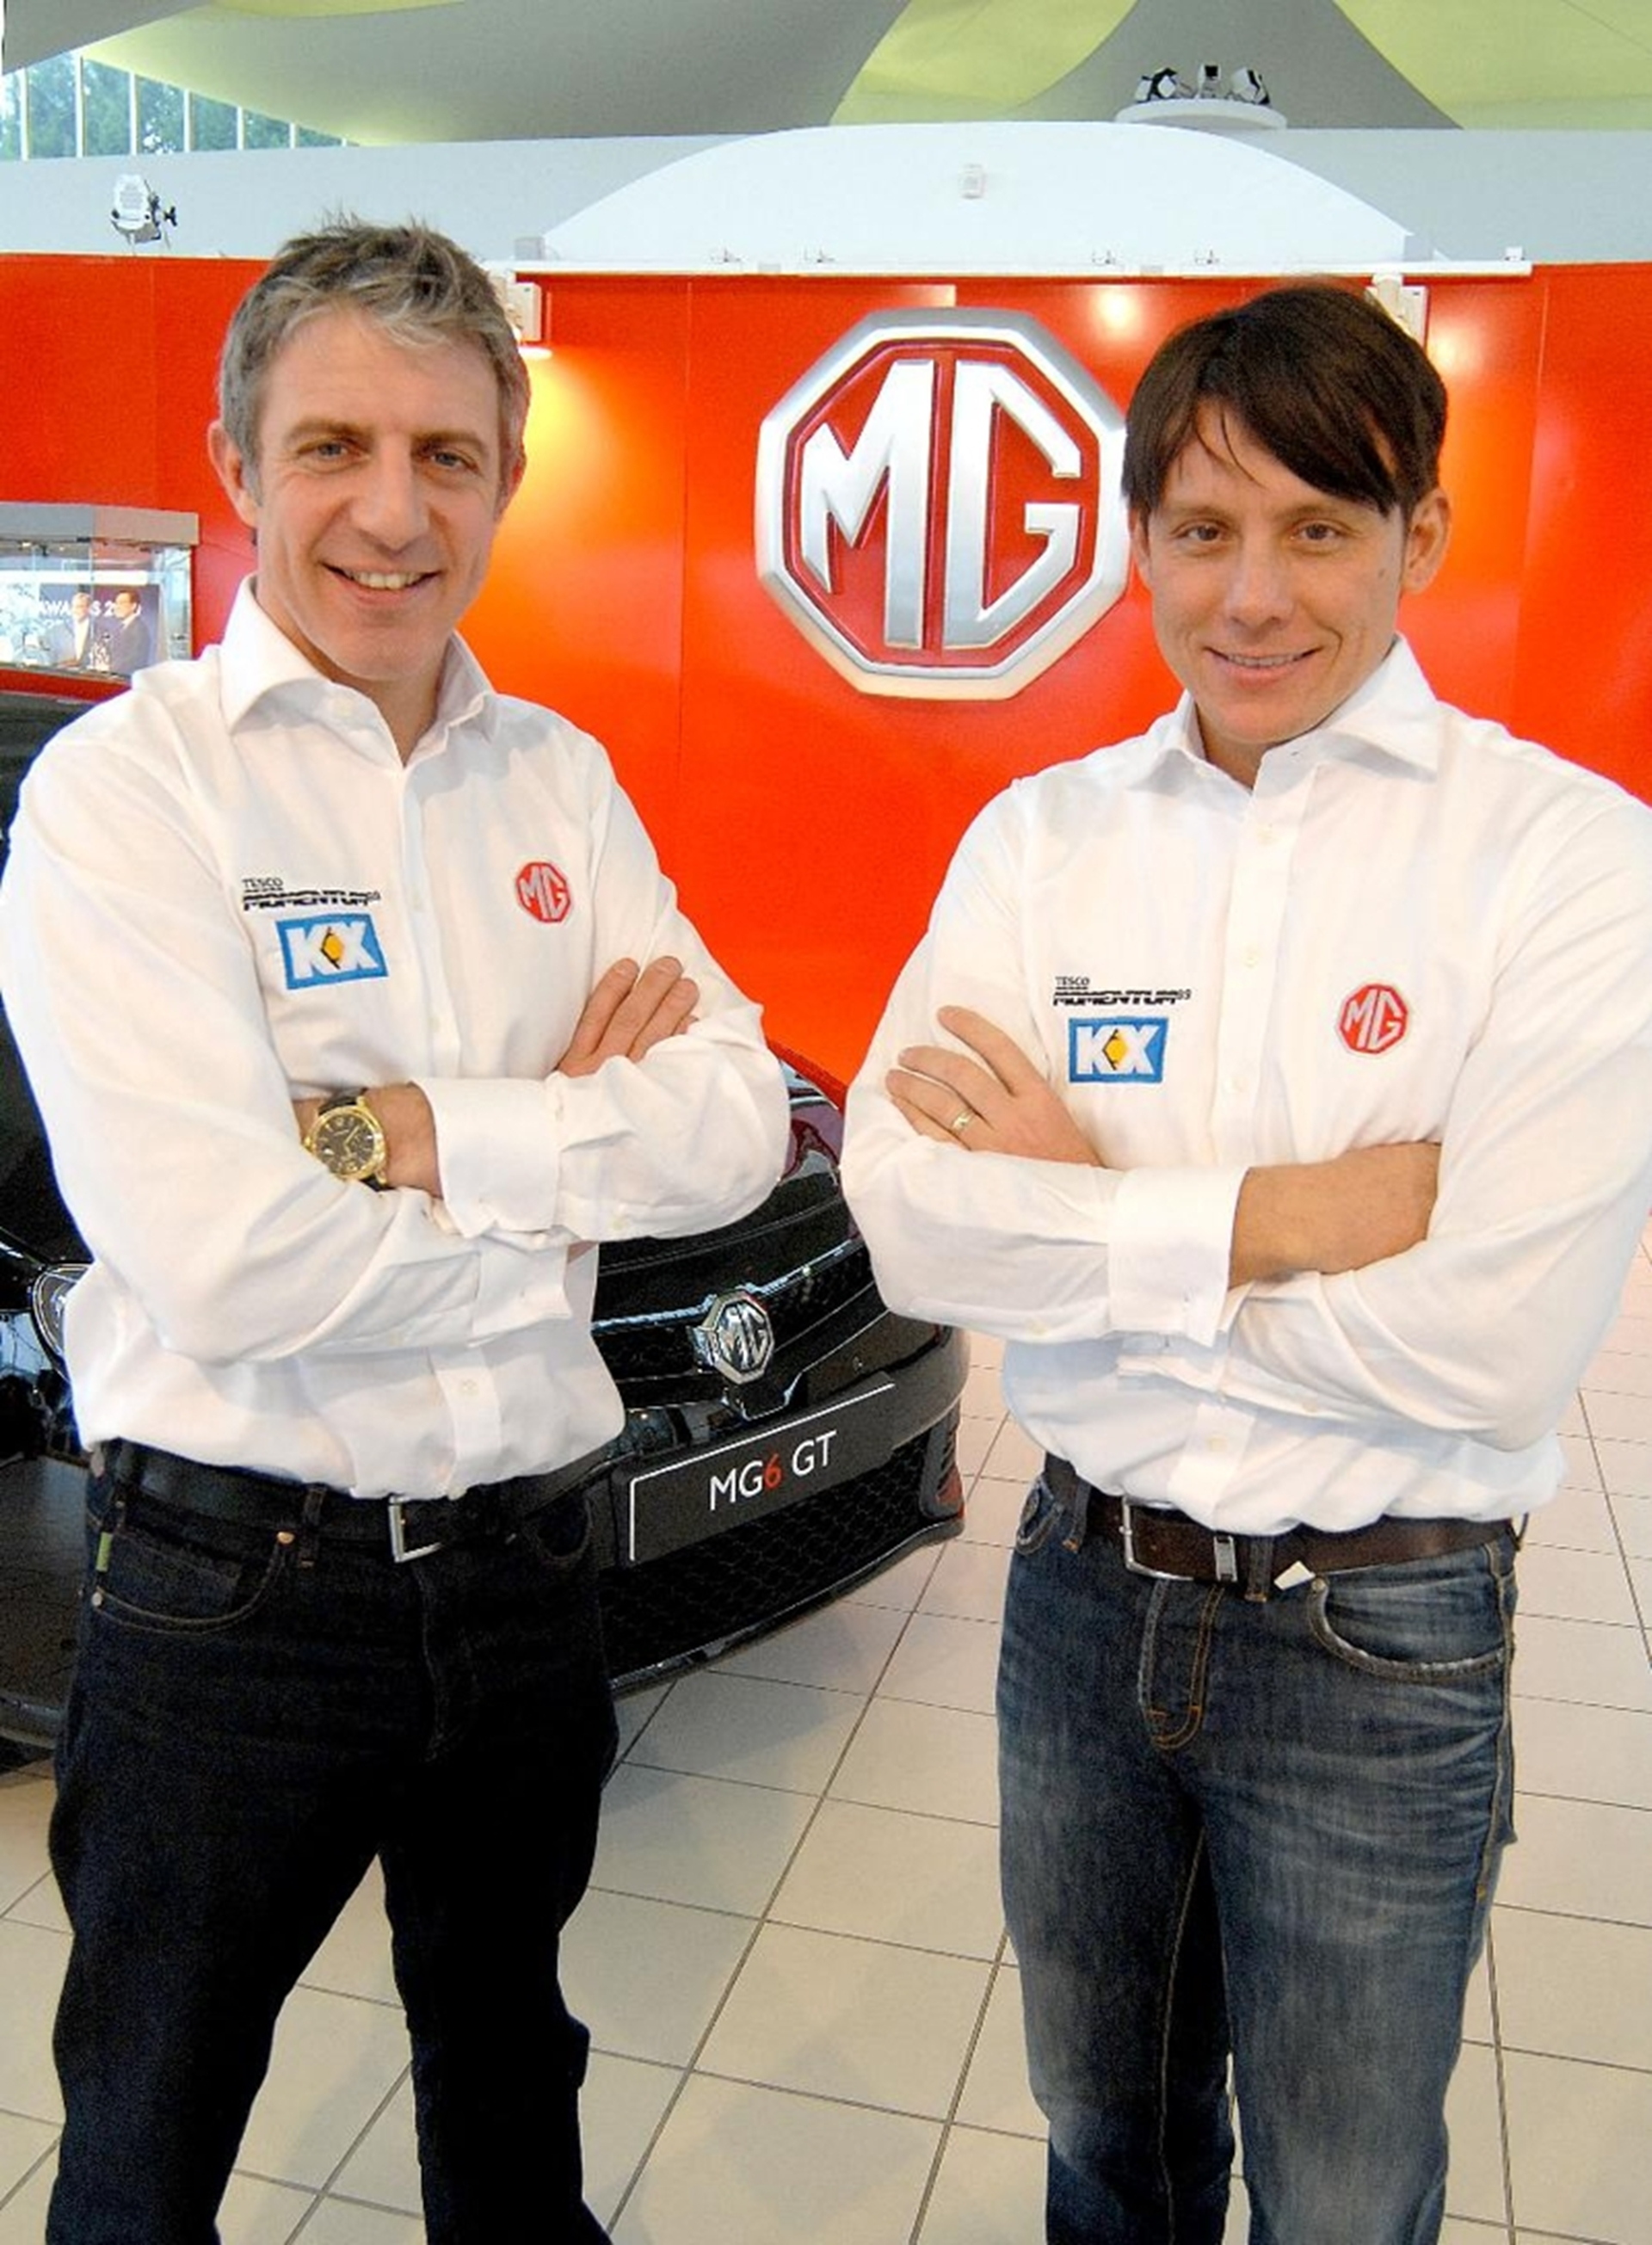 Jason Plato and Andy Neate